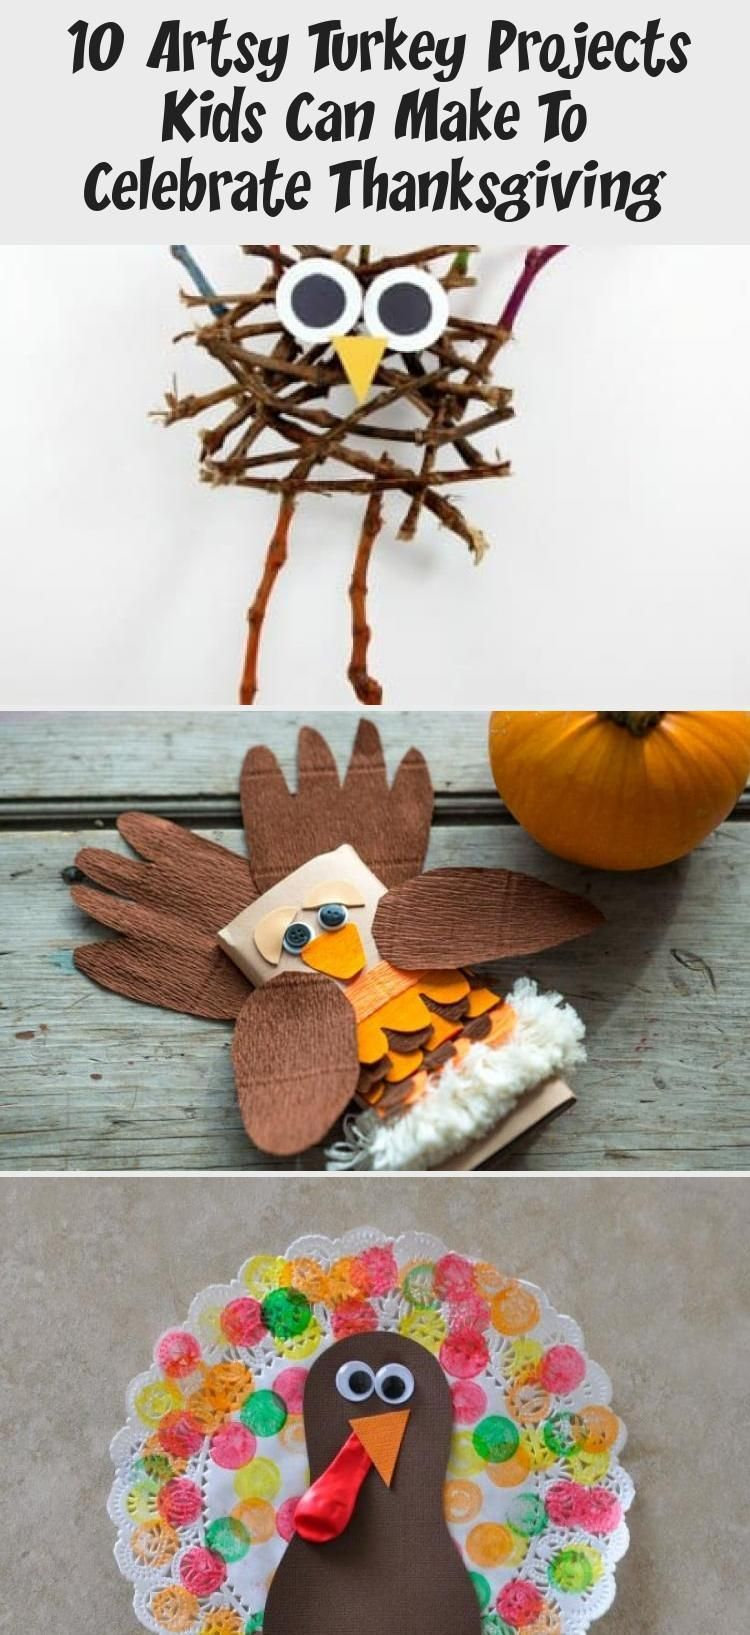 10 Artsy Turkey Projects Kids Can Make To Celebrate Thanksgiving #turkeyprojectsforkids 10 ARTSY TURKEY PROJECTS KIDS CAN MAKE TO CELEBRATE THANKSGIVING #hellowonderful #Christianthanksgivingcrafts #thanksgivingcraftsPumpkin #thanksgivingcraftsWithLeaves #thanksgivingcraftsTree #thanksgivingcraftsHandprint #turkeyprojectsforkids 10 Artsy Turkey Projects Kids Can Make To Celebrate Thanksgiving #turkeyprojectsforkids 10 ARTSY TURKEY PROJECTS KIDS CAN MAKE TO CELEBRATE THANKSGIVING #hellowonderful #turkeyprojectsforkids